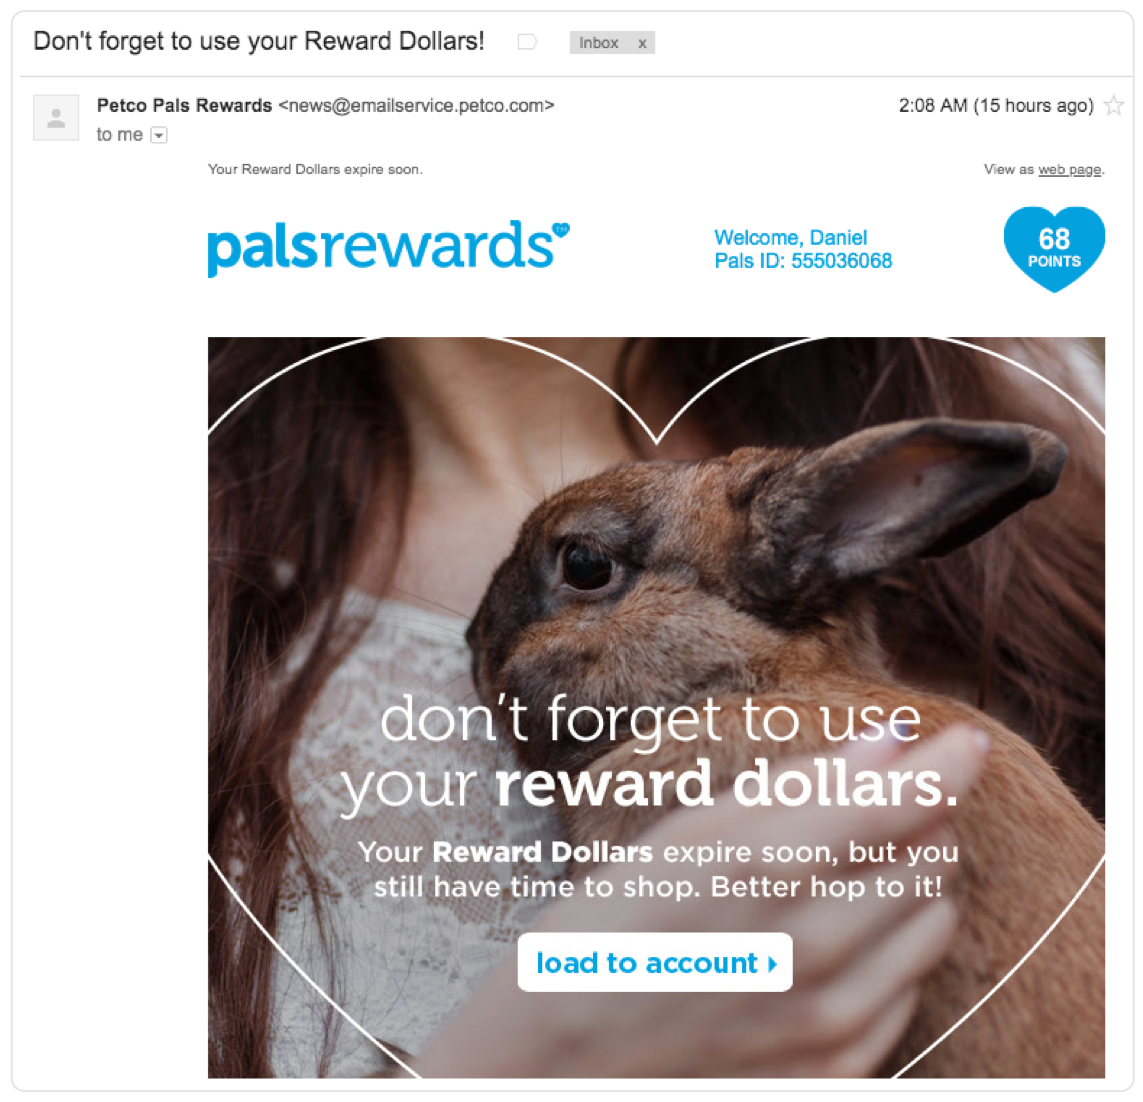 example of an email for a rewards program